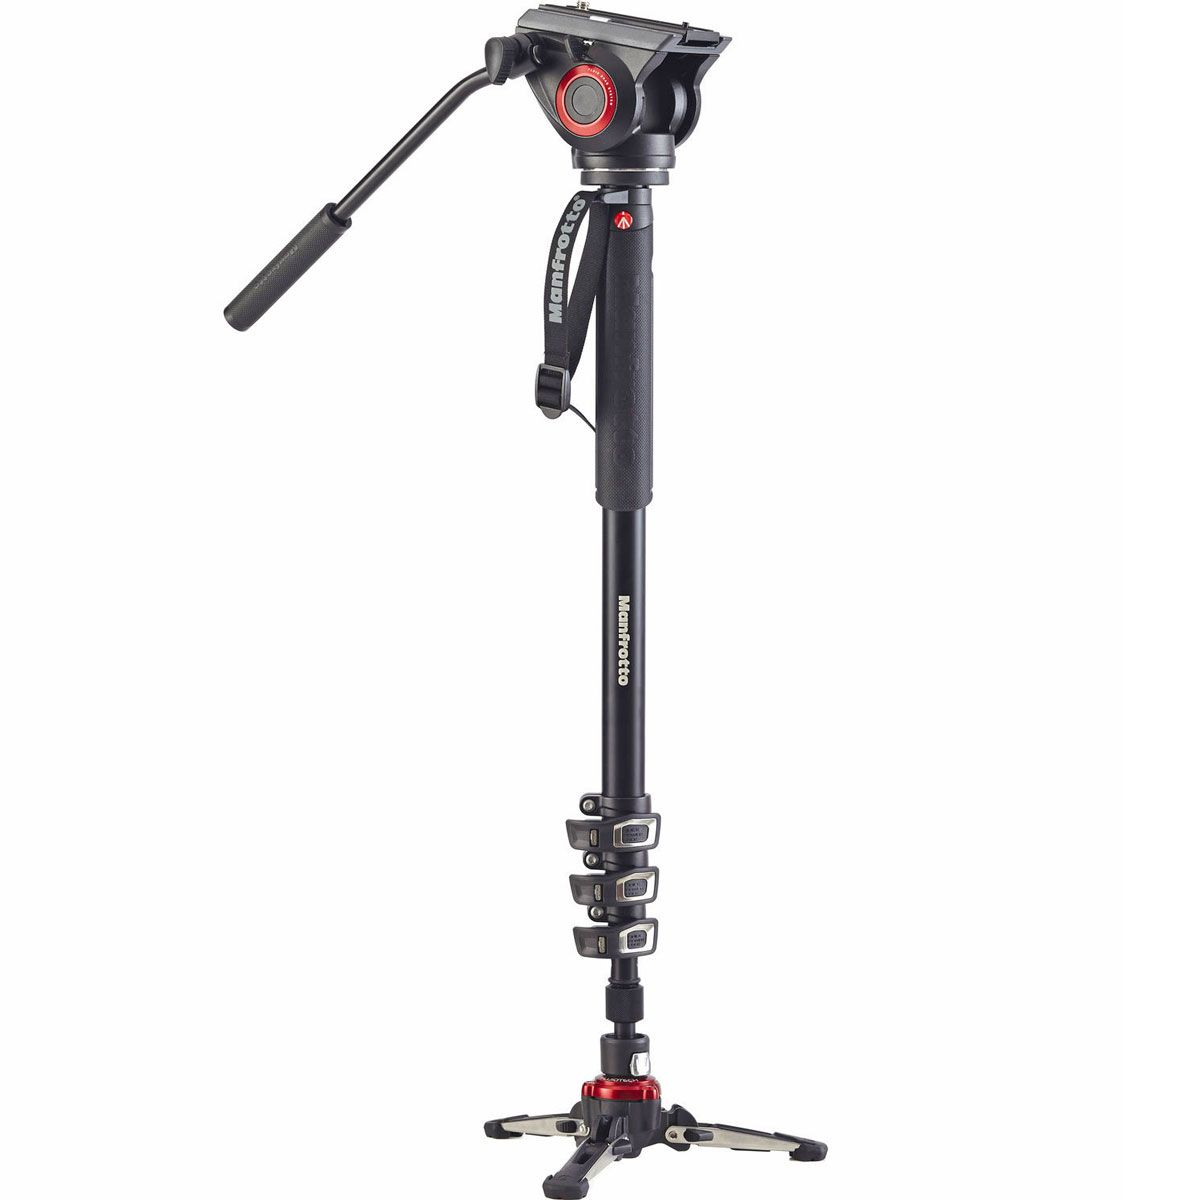 Trípode Manfrotto XPRO 500 Video – Monopie